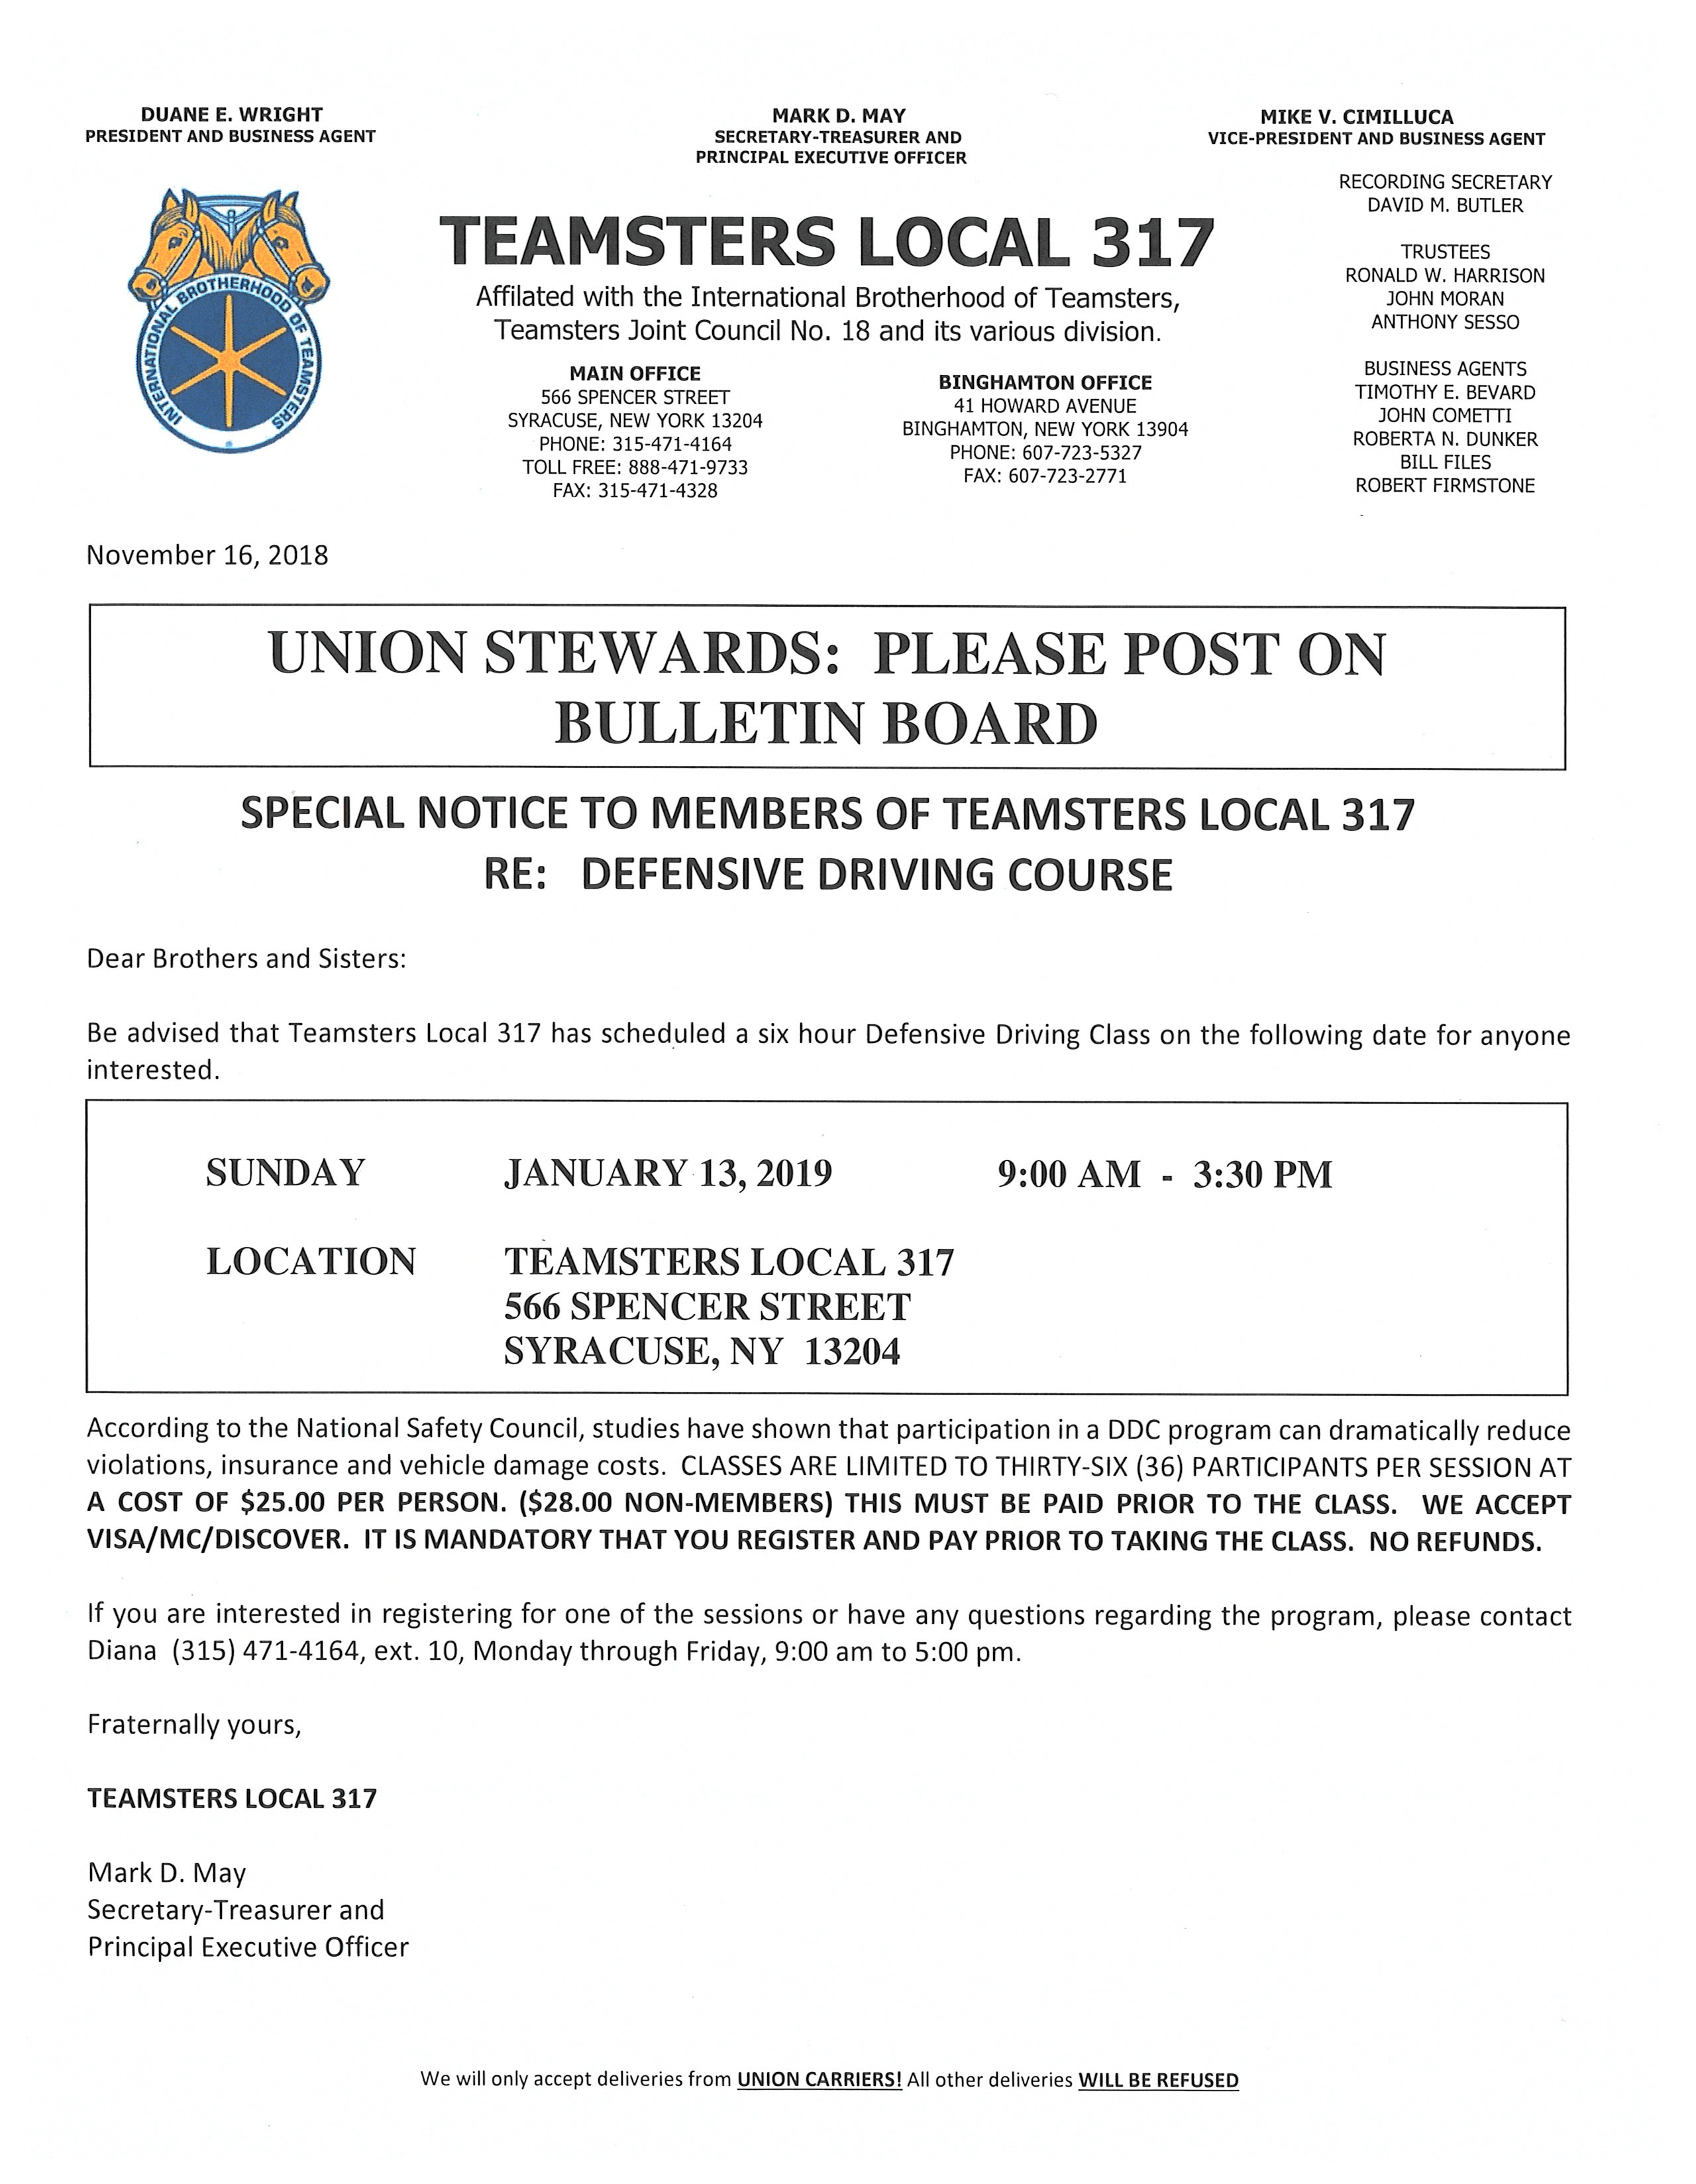 Teamsters Local 317